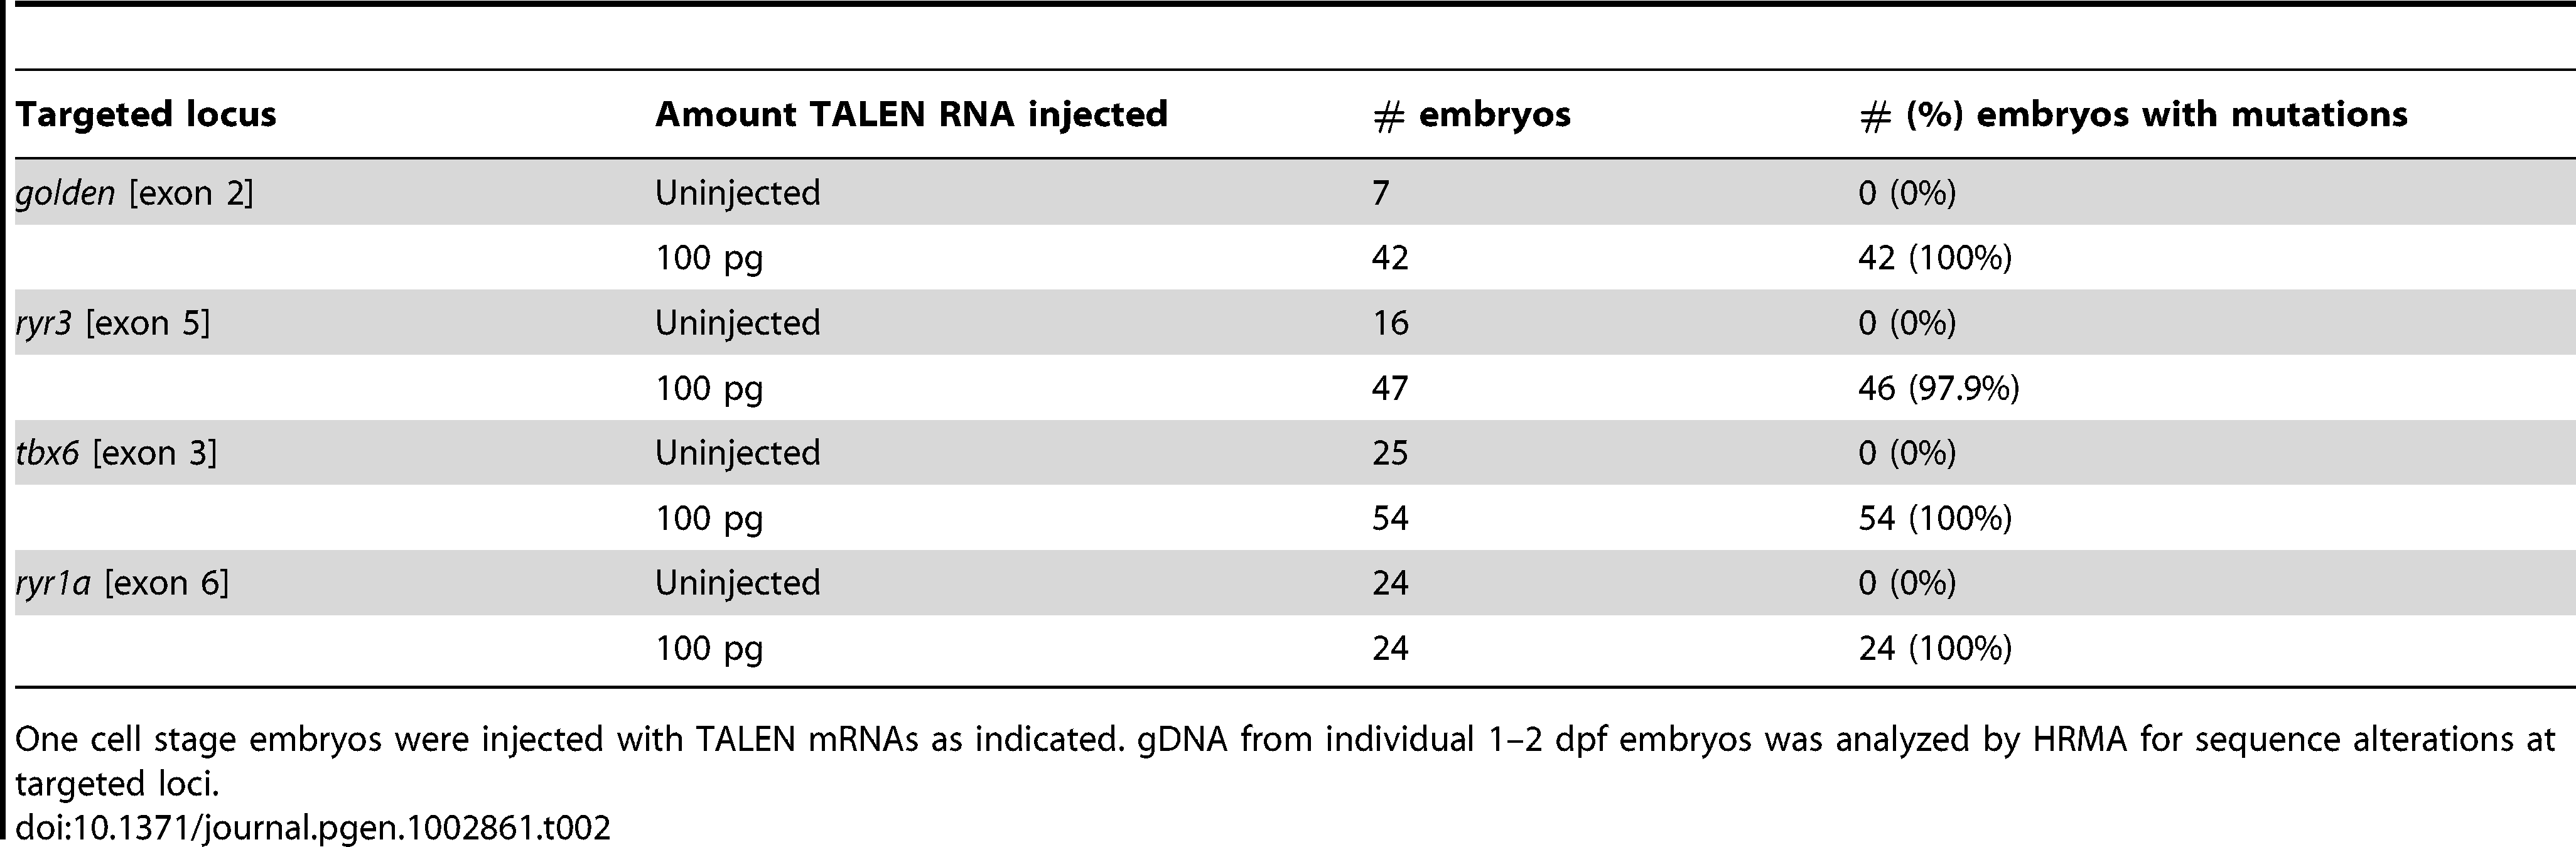 Induction of DNA sequence alterations at targeted loci.